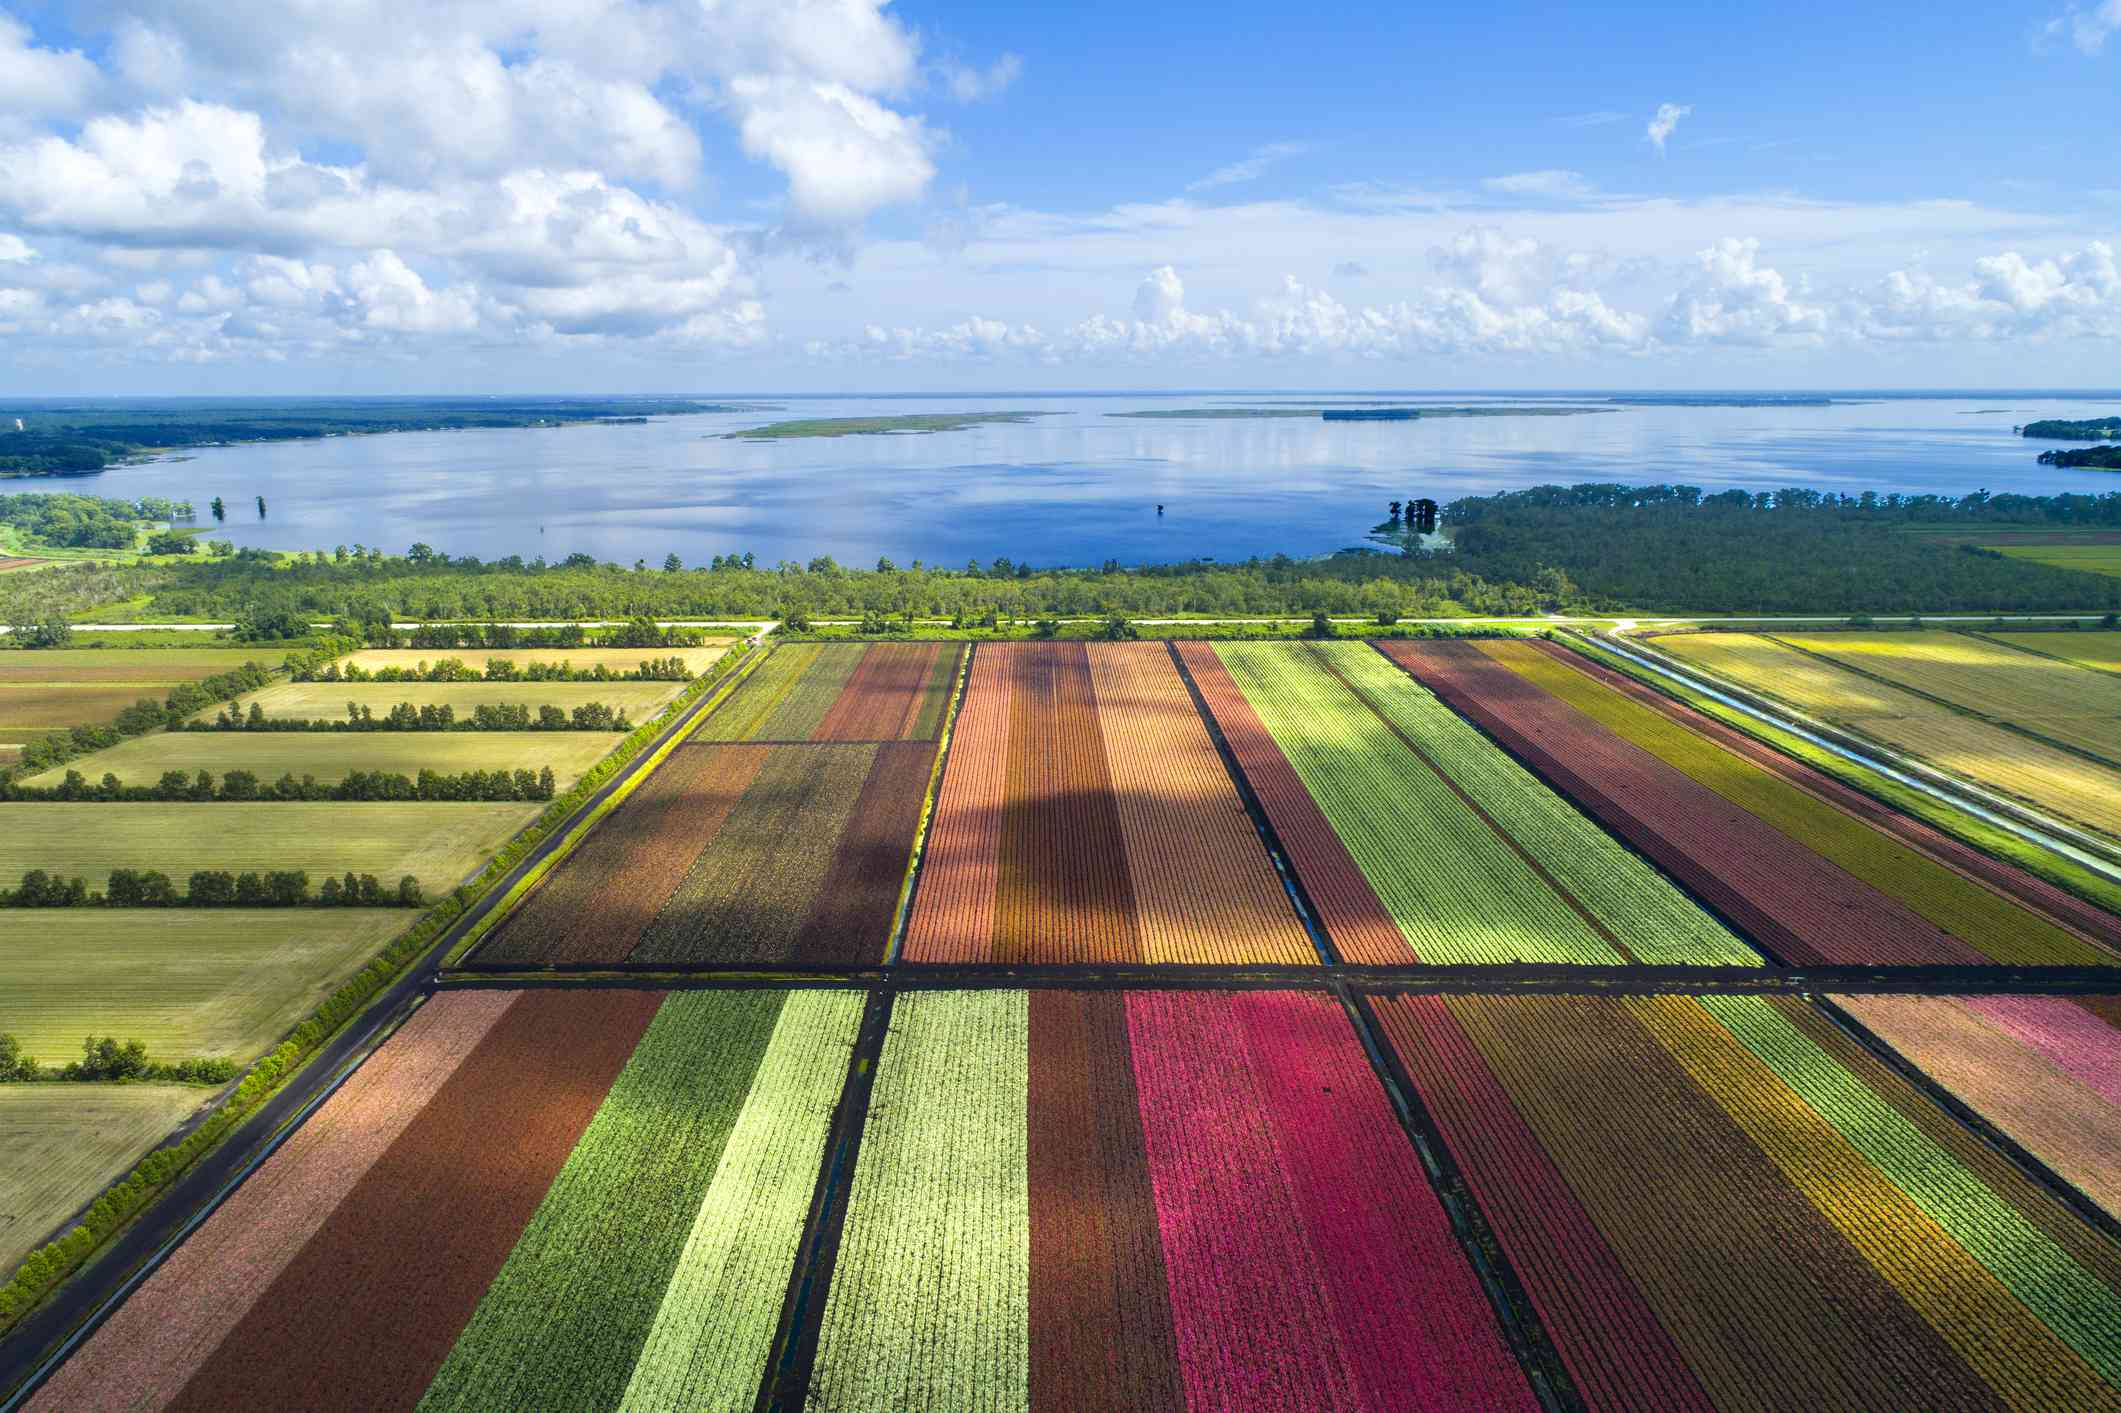 Aerial image of massive color-blocked flower fields with a large lake behind them in Lake Placid Florida